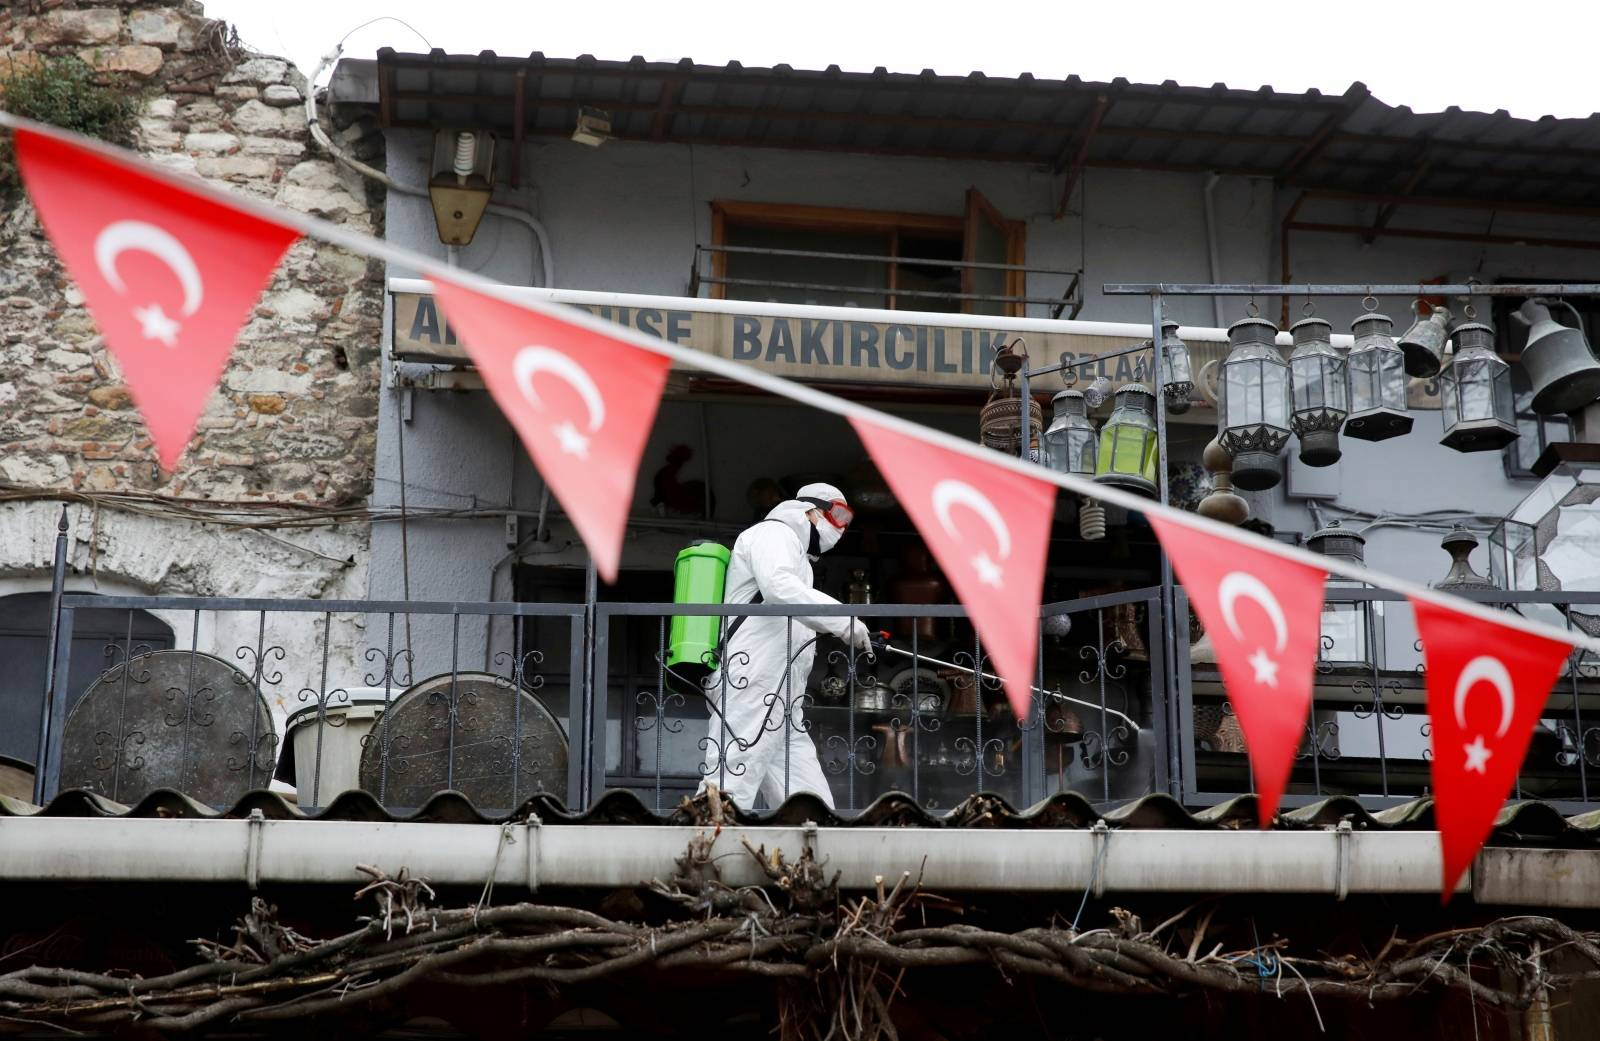 FILE PHOTO: A worker in a protective suit sprays disinfectant at Grand Bazaar, known as the Covered Bazaar, to prevent the spread of coronavirus